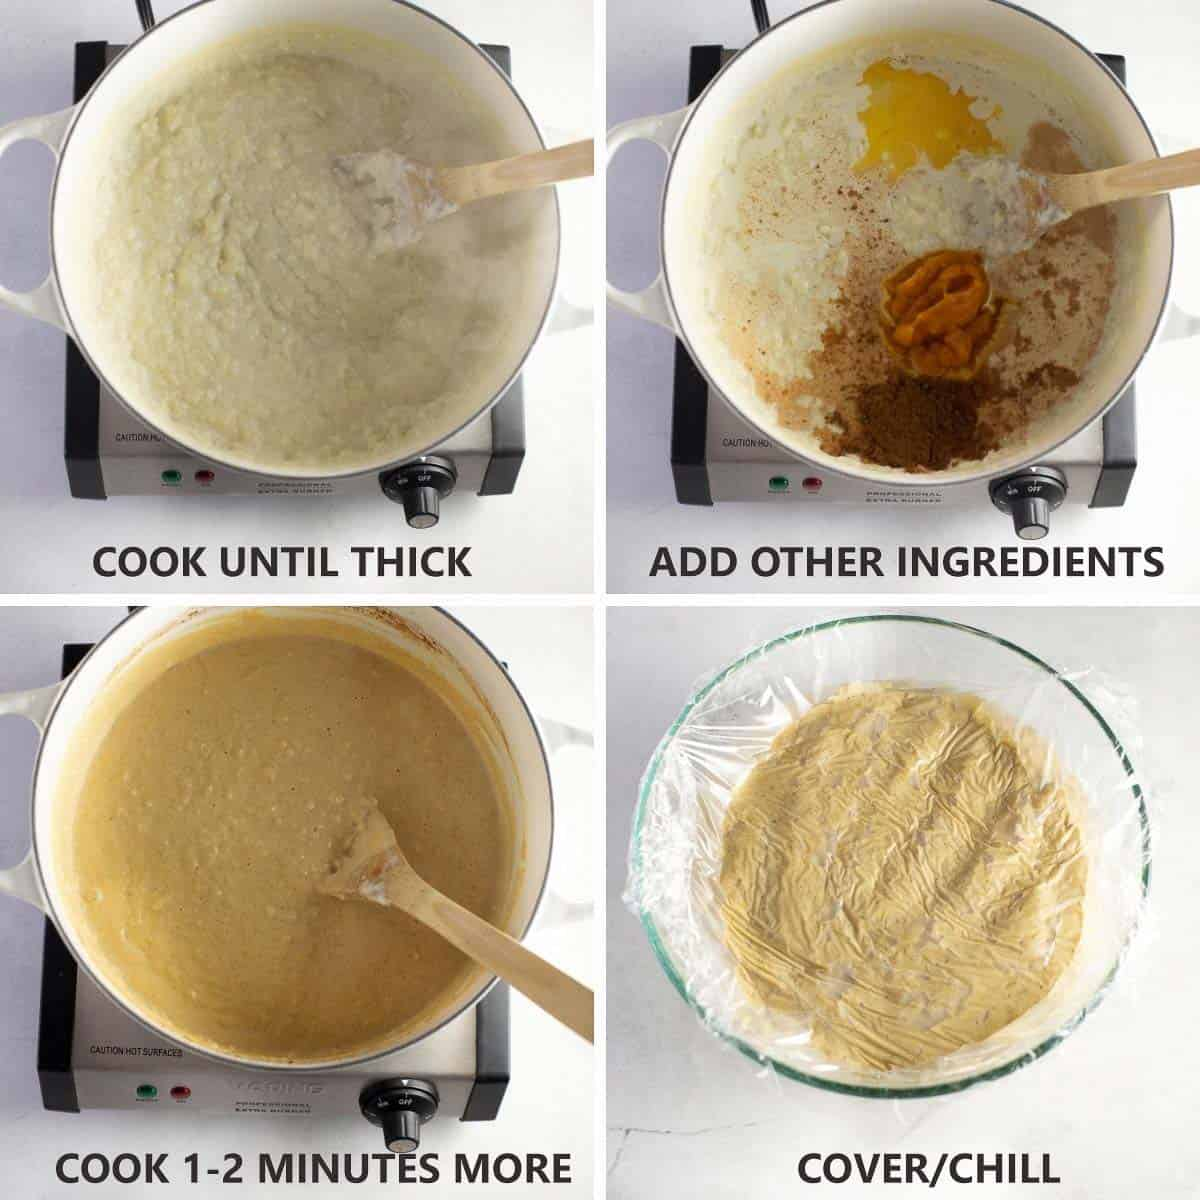 step by step instructions of how to finish cooking rice pudding and chill it